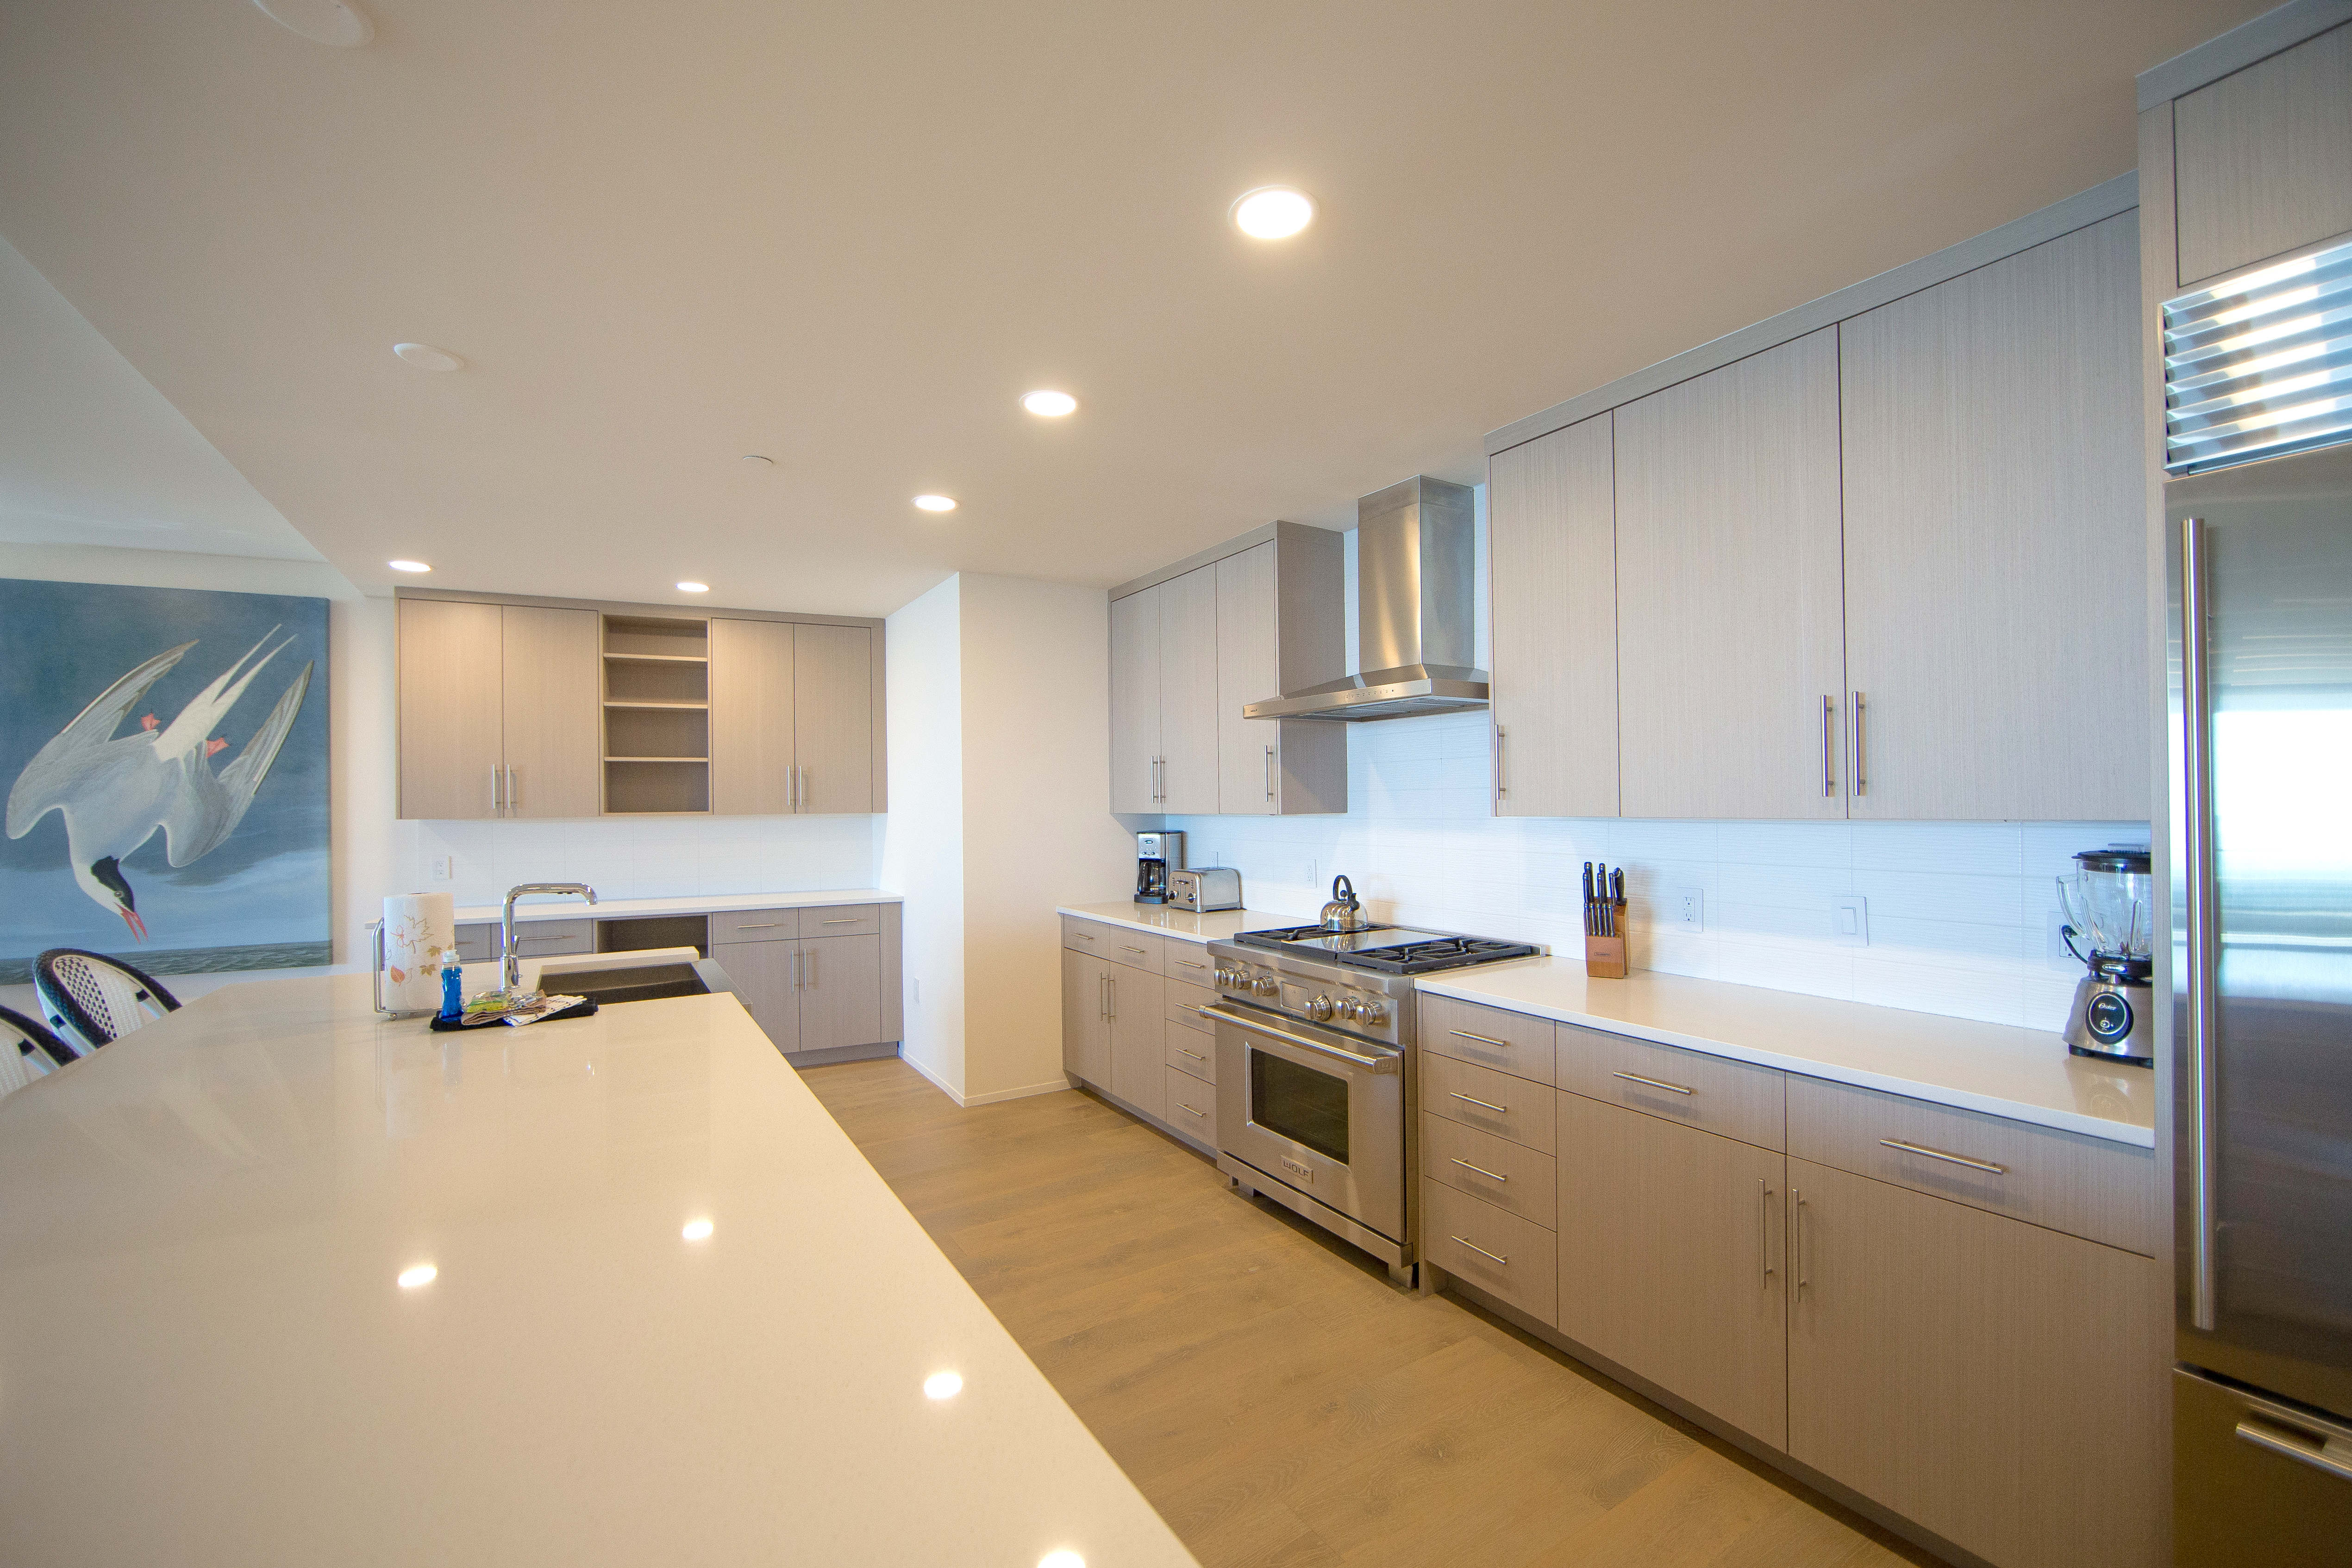 Huge kitchen with stainless appliances and lots of counter space